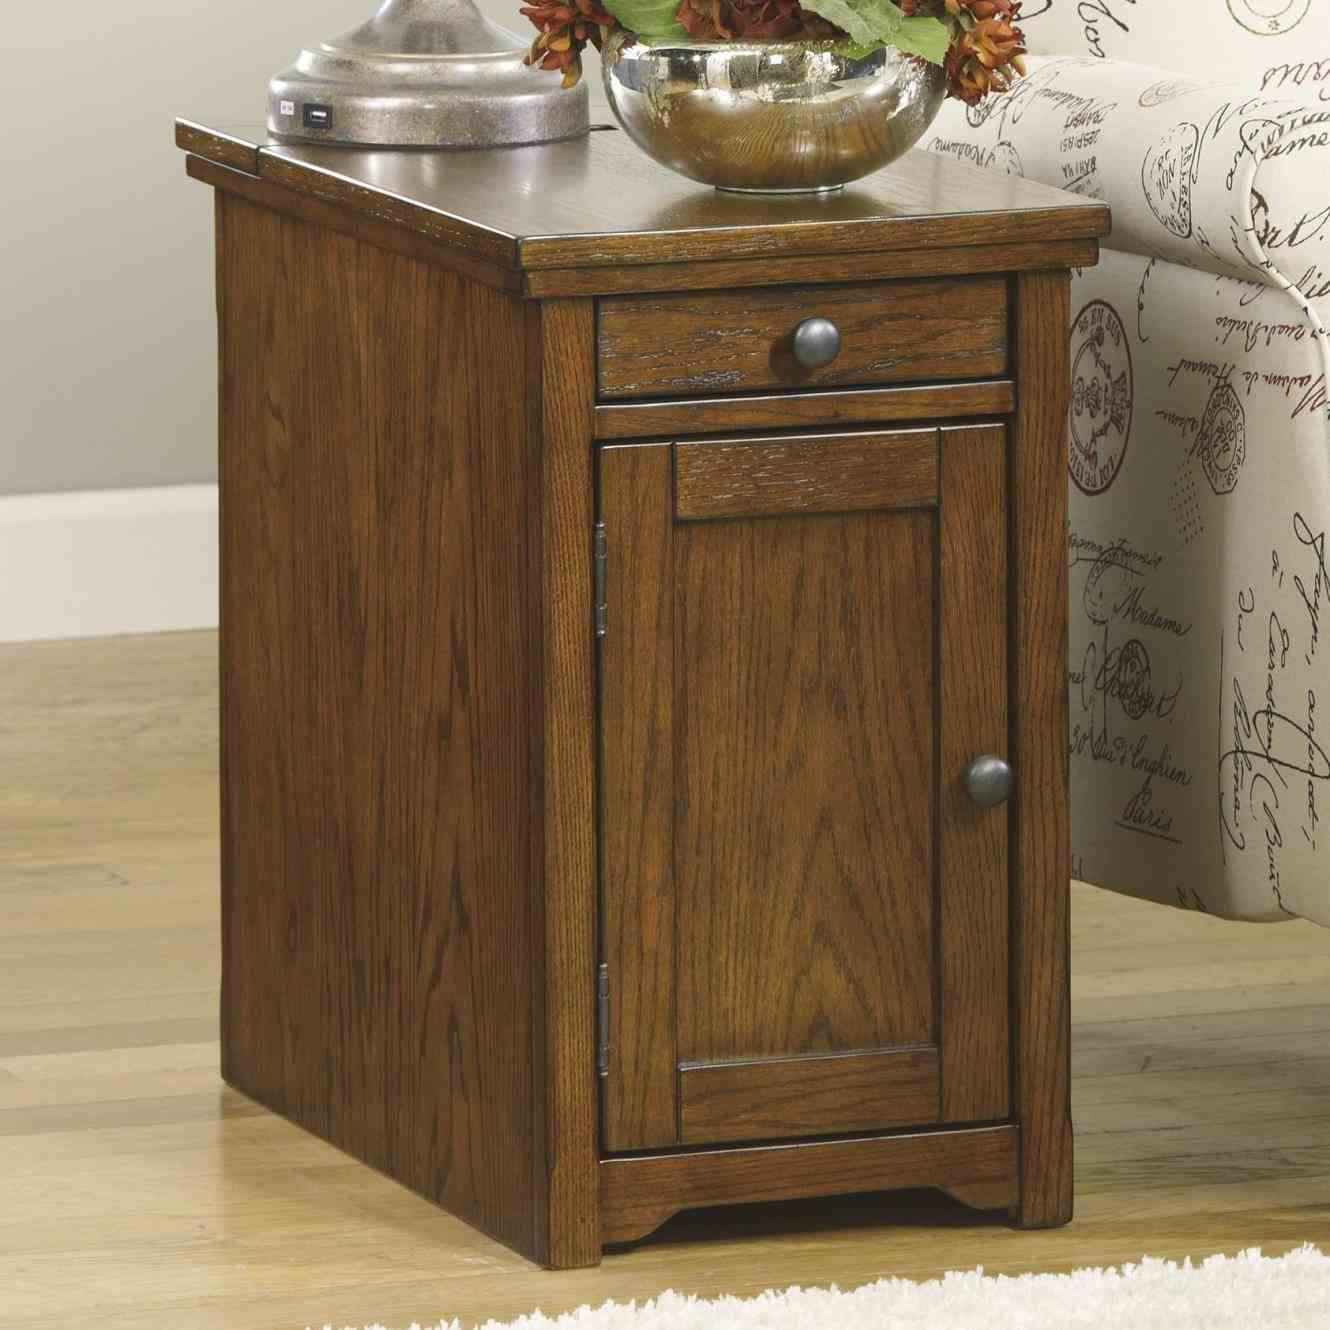 inch round tablecloth the fantastic nice carson forge end table tables with gadir web chair side lift lid built power charging station coffee and accent hobby lobby patio